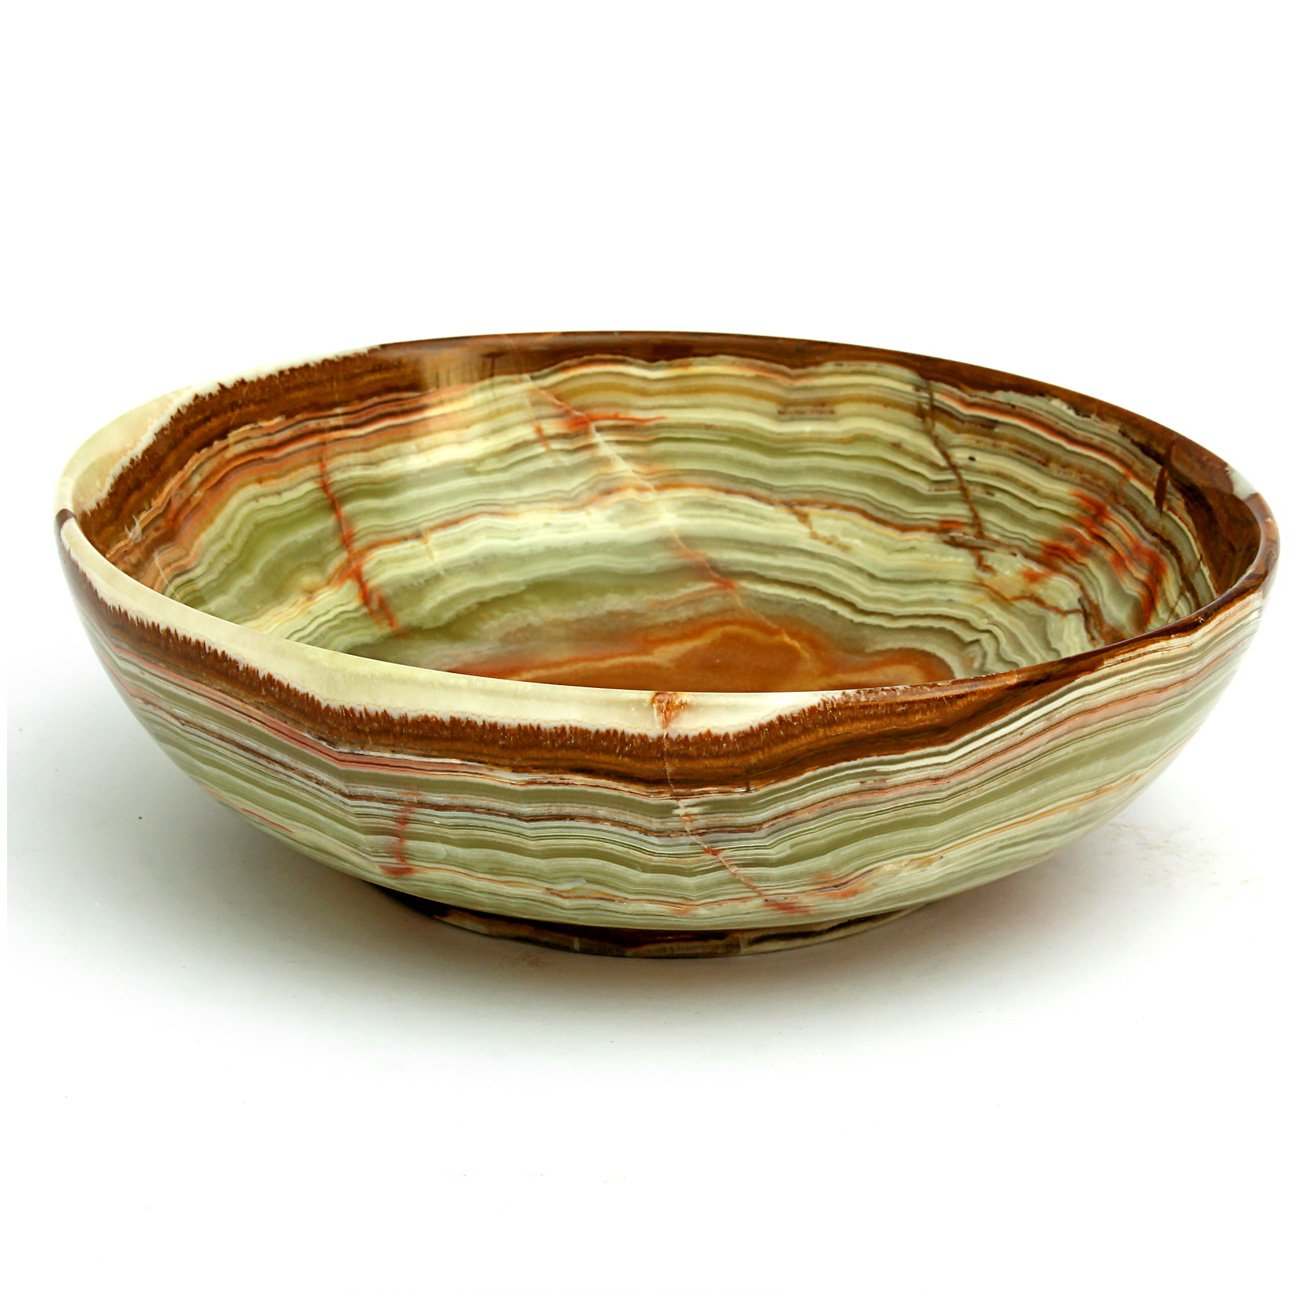 Natures Artifacts Beautifully handcrafted Multi Green Onyx Serving Bowl - 100% Natural Stone - 6''